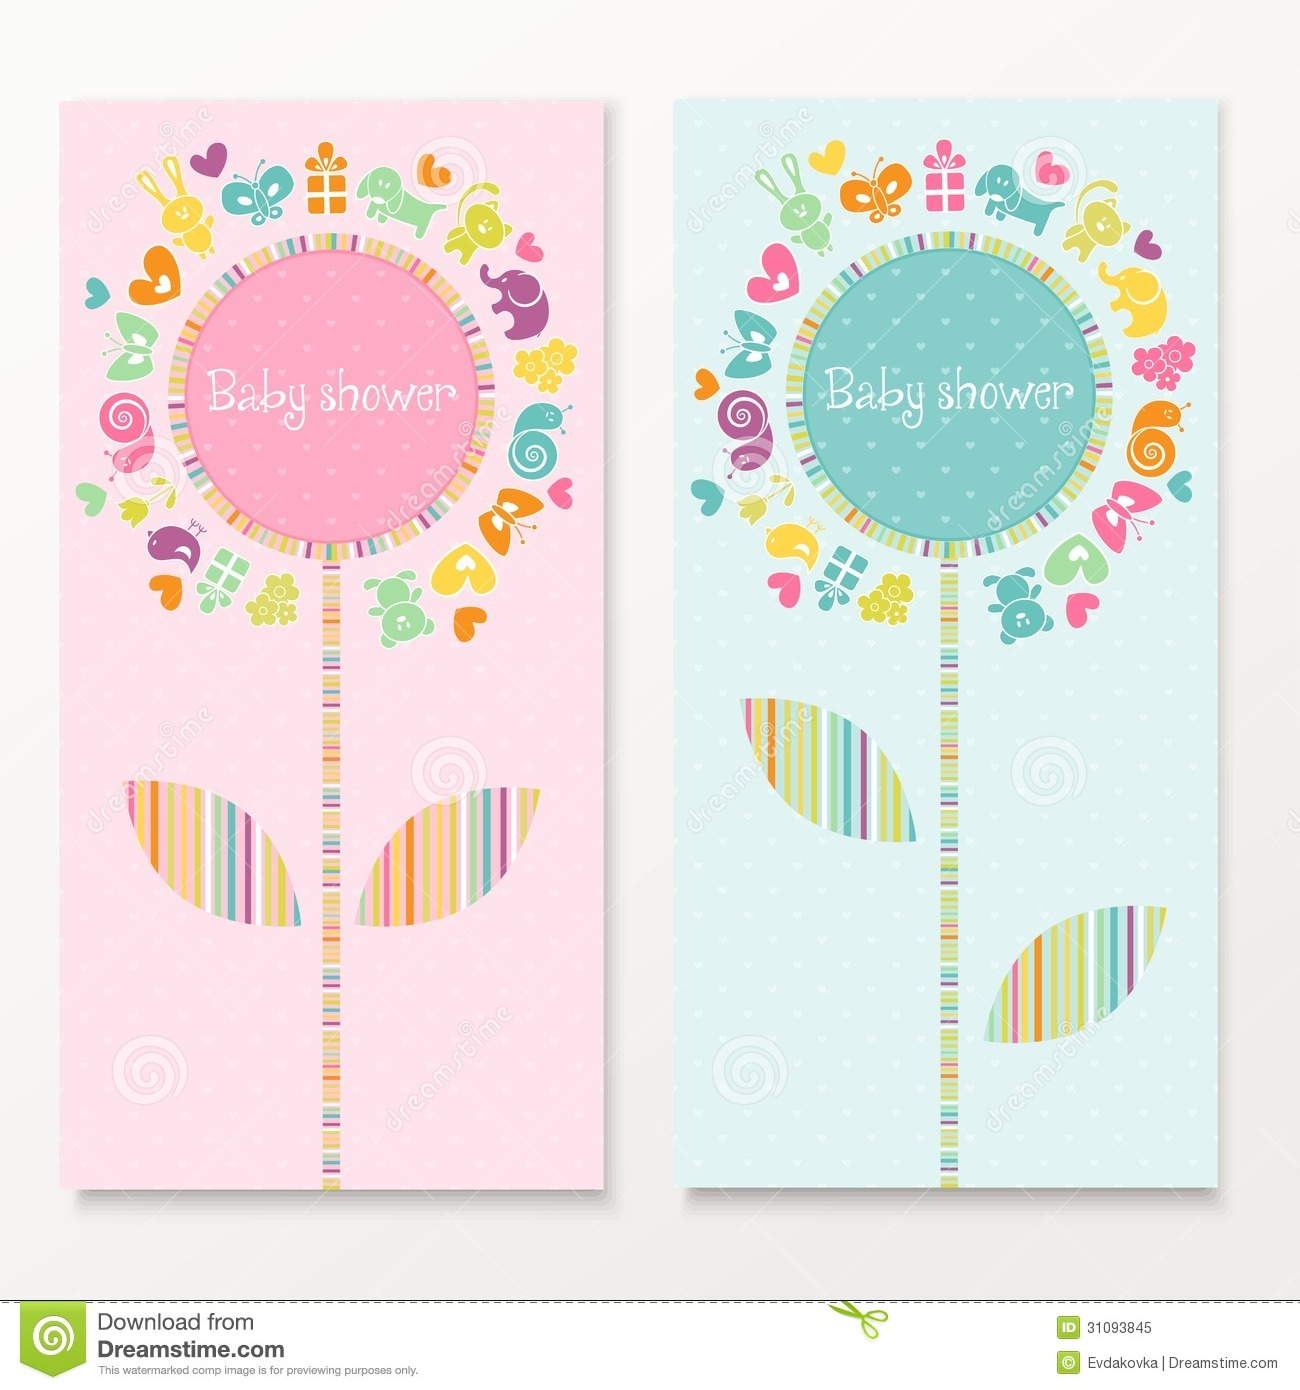 Full Size of Baby Shower:graceful Baby Shower Cards Image Designs Baby Shower Cards Baby Shower Venue Ideas Mi Baby Shower Baby Shower Thank You Baby Shower Games Baby Shower Greetings Modern Baby Shower Themes